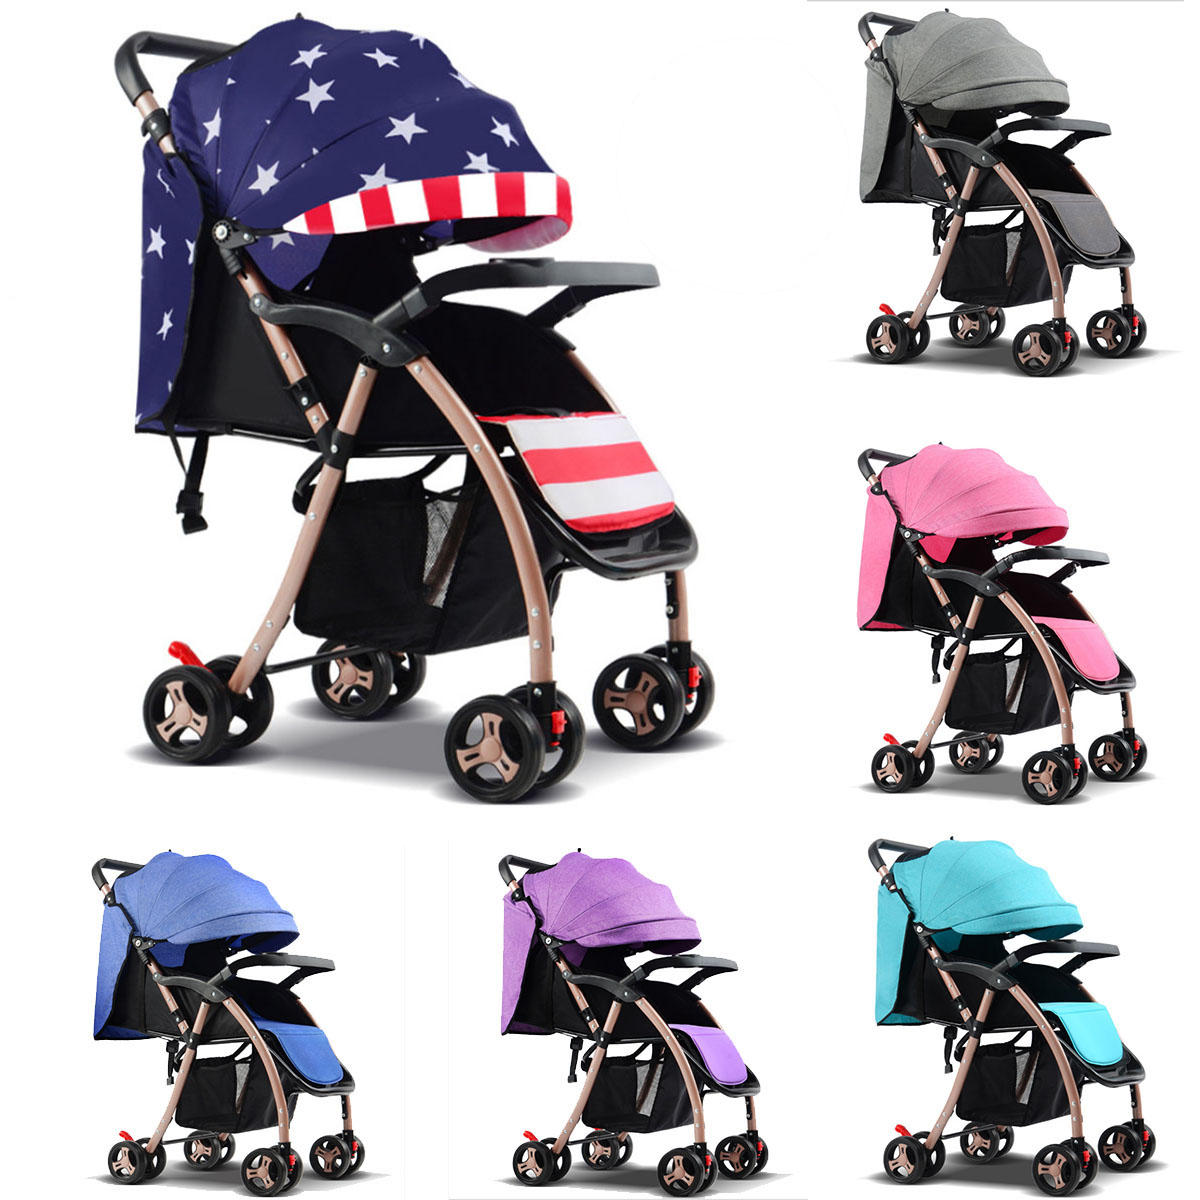 Newborn Baby Buggy Reviews Foldable Baby Kids Stroller Newborn Infant Awning Pushchair Buggy Travel Pram Lightweight Compact Strollers